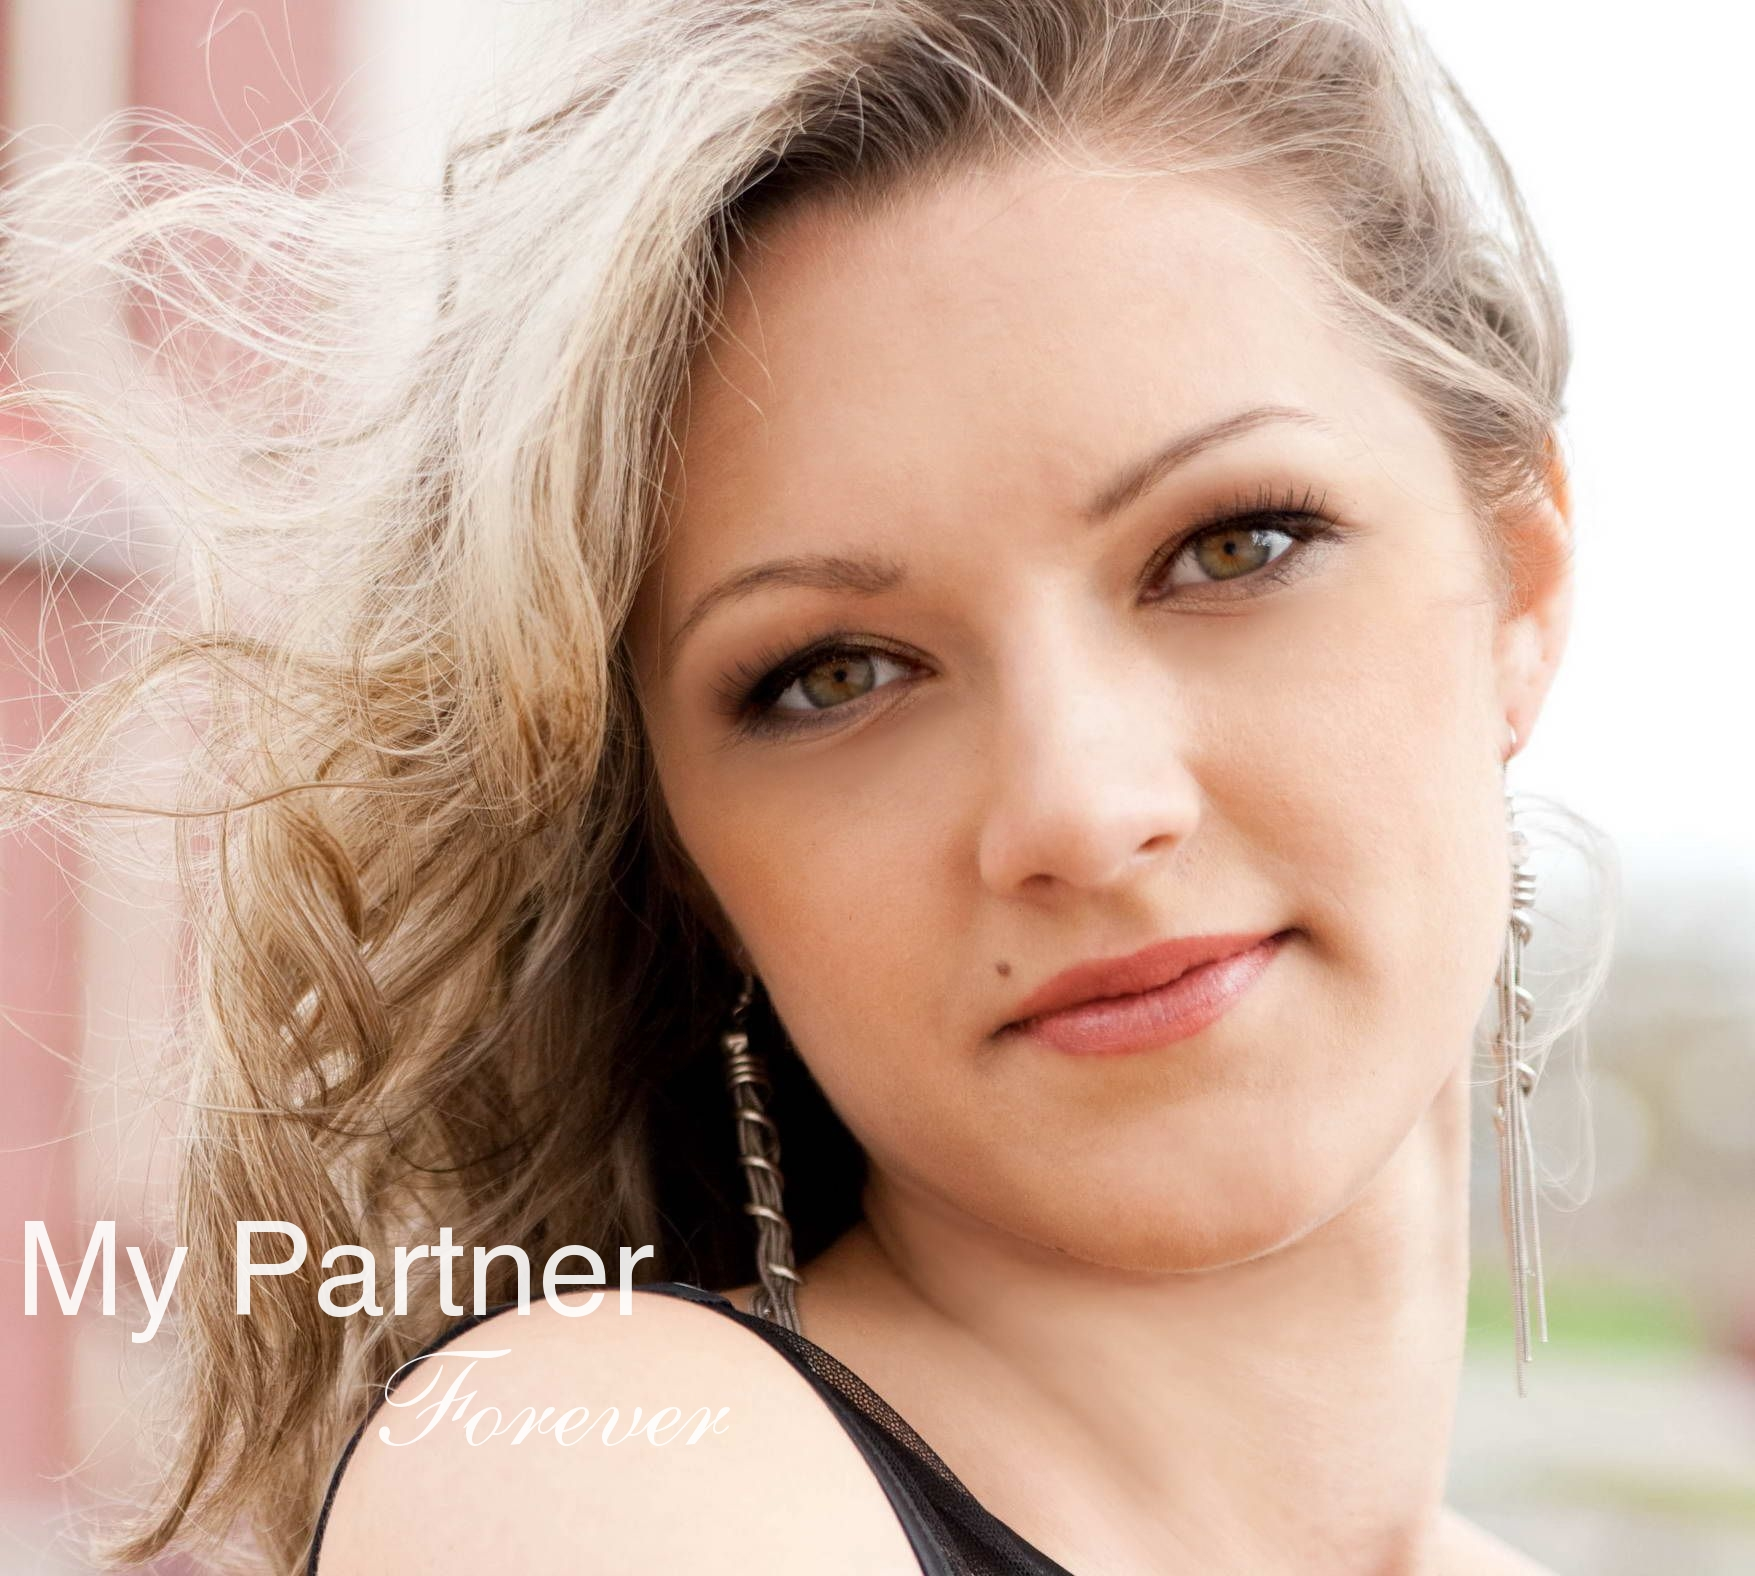 Meet Beautiful Belarusian Girl Darya from Grodno, Belarus